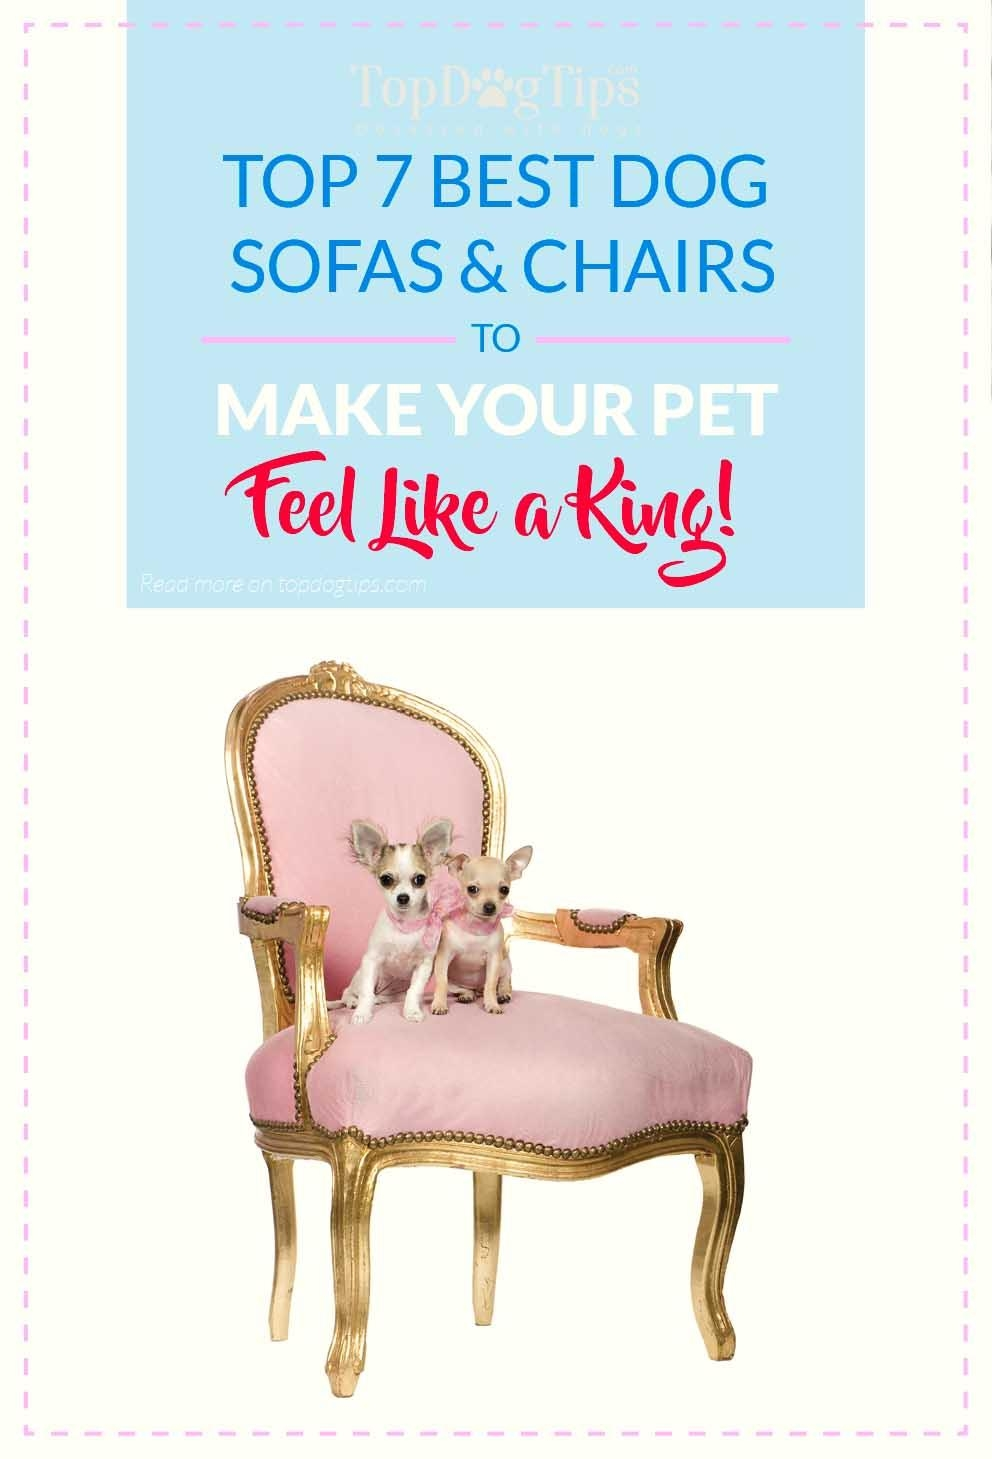 Top 7 Best Dog Sofas And Chairs For Stylish Home Decor In 2017 Pertaining To Dog Sofas And Chairs (Image 19 of 20)